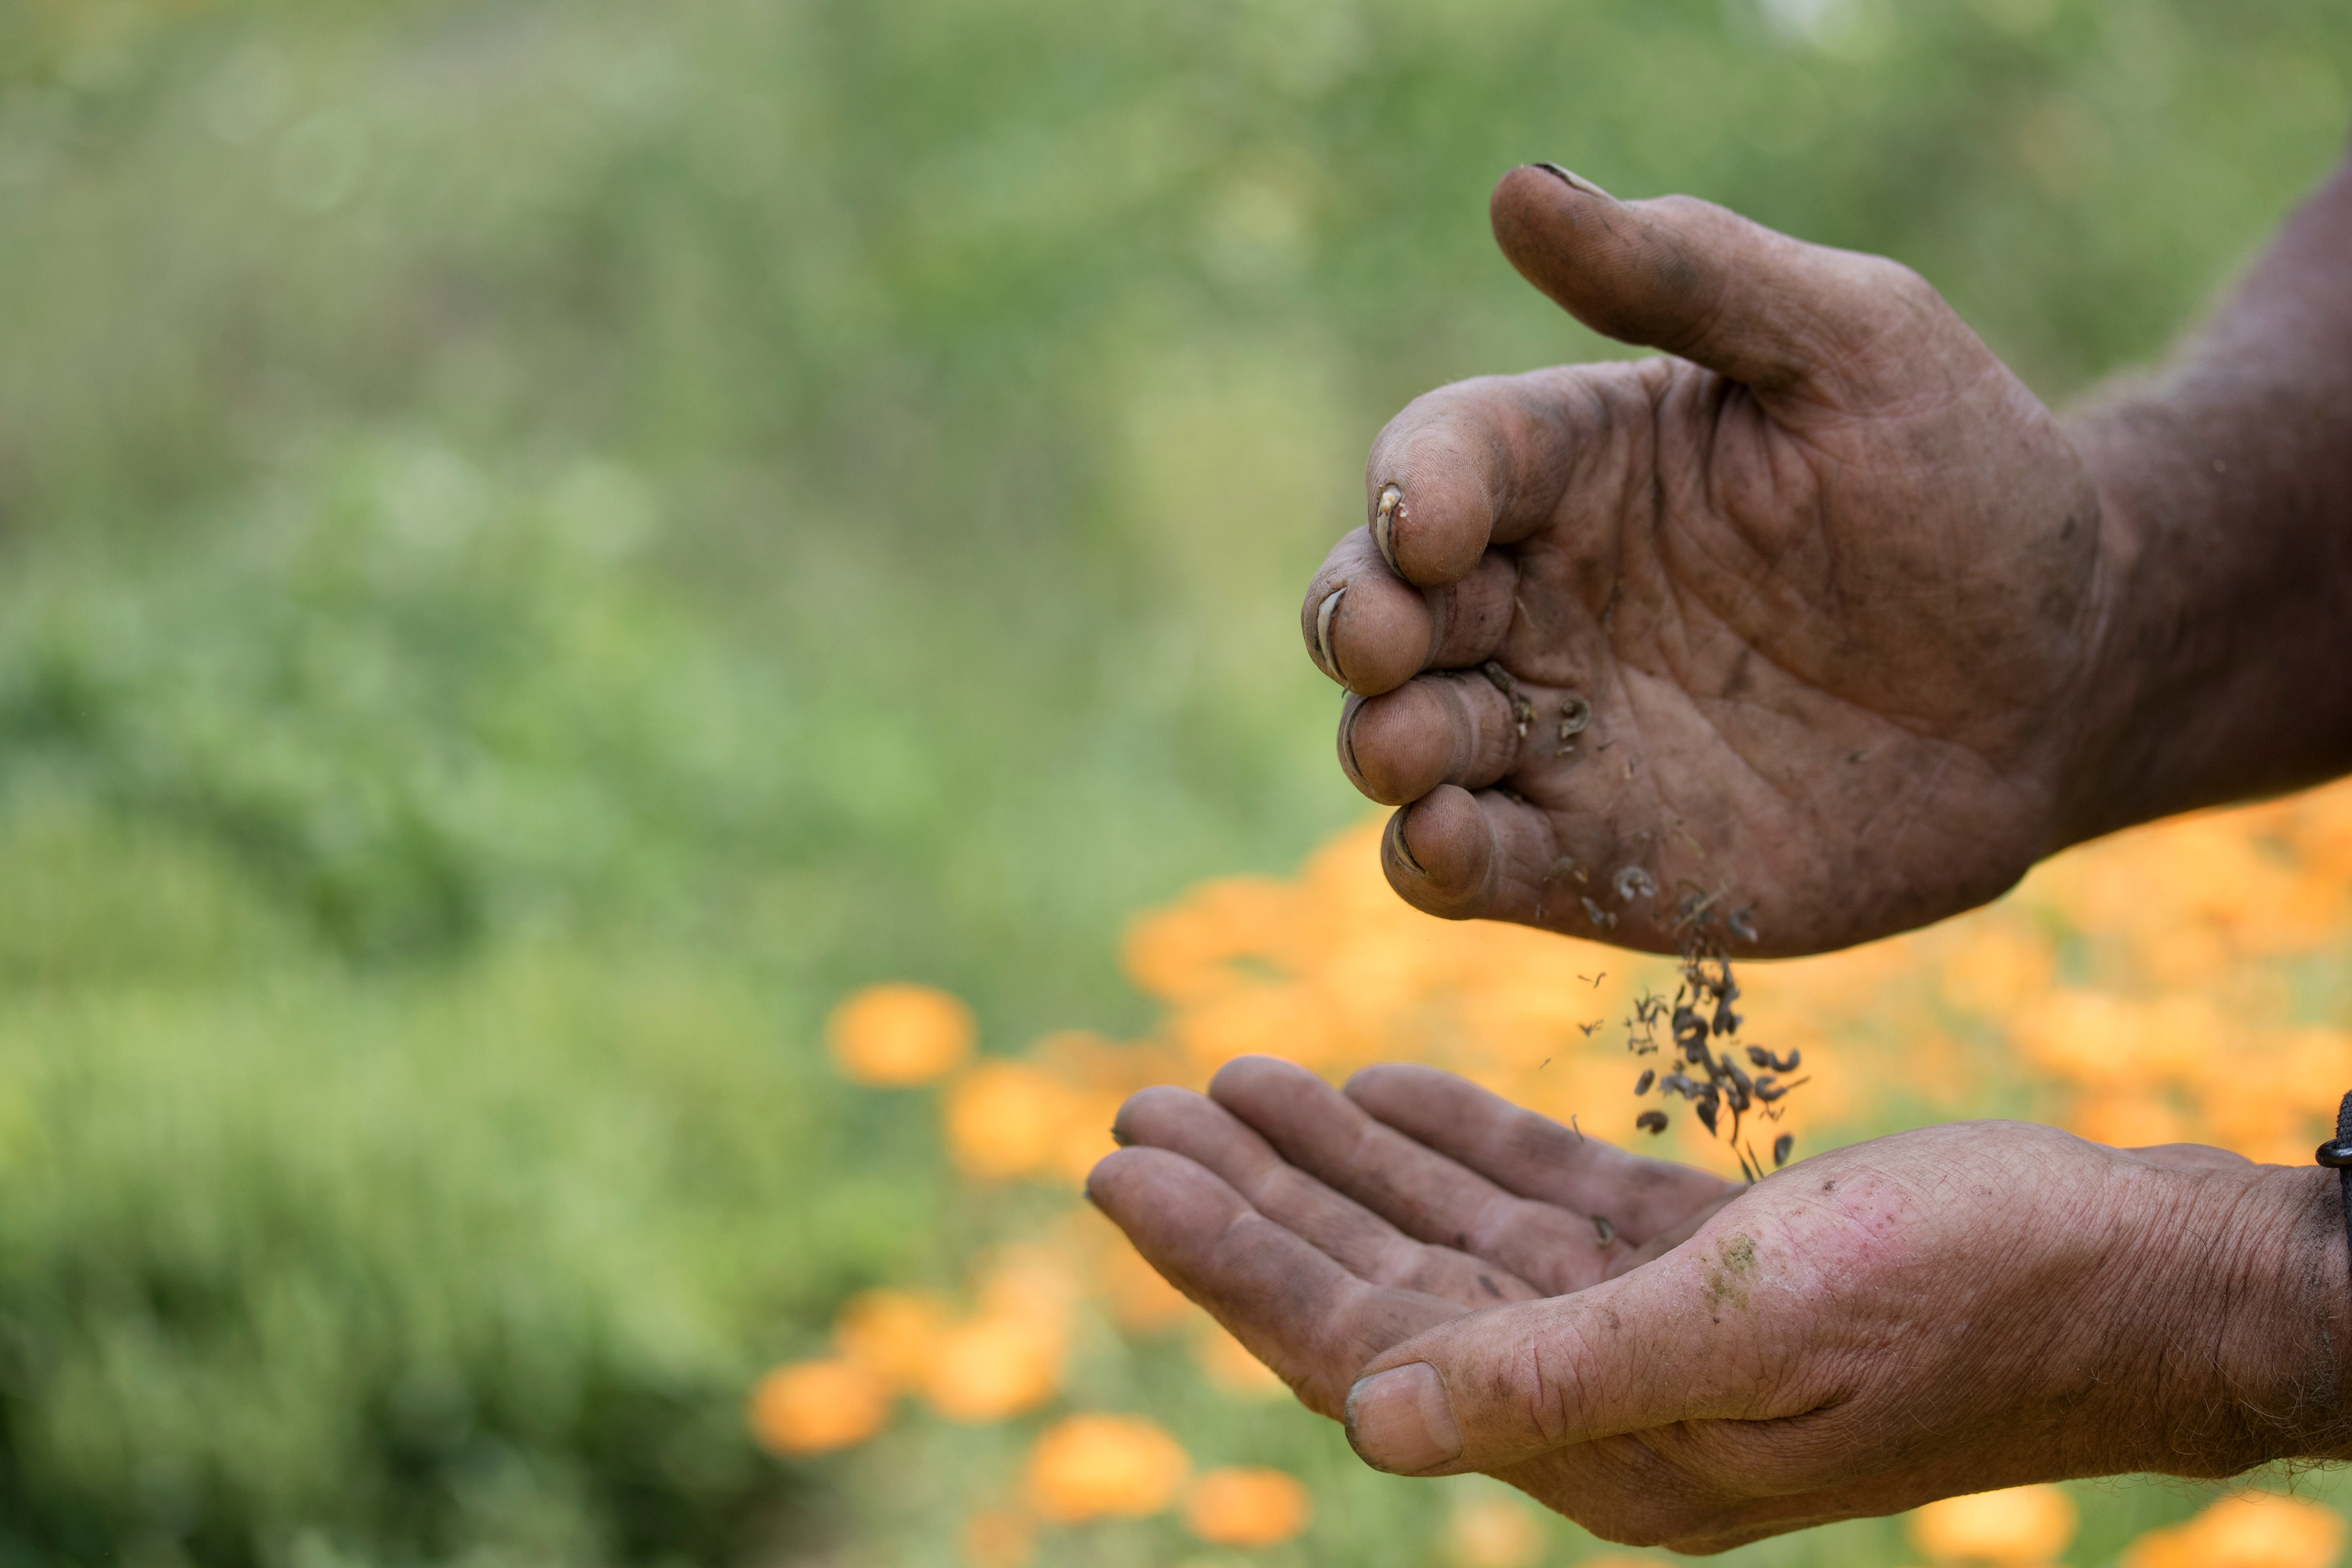 Working hands holding seeds for planting and tossing them between hands